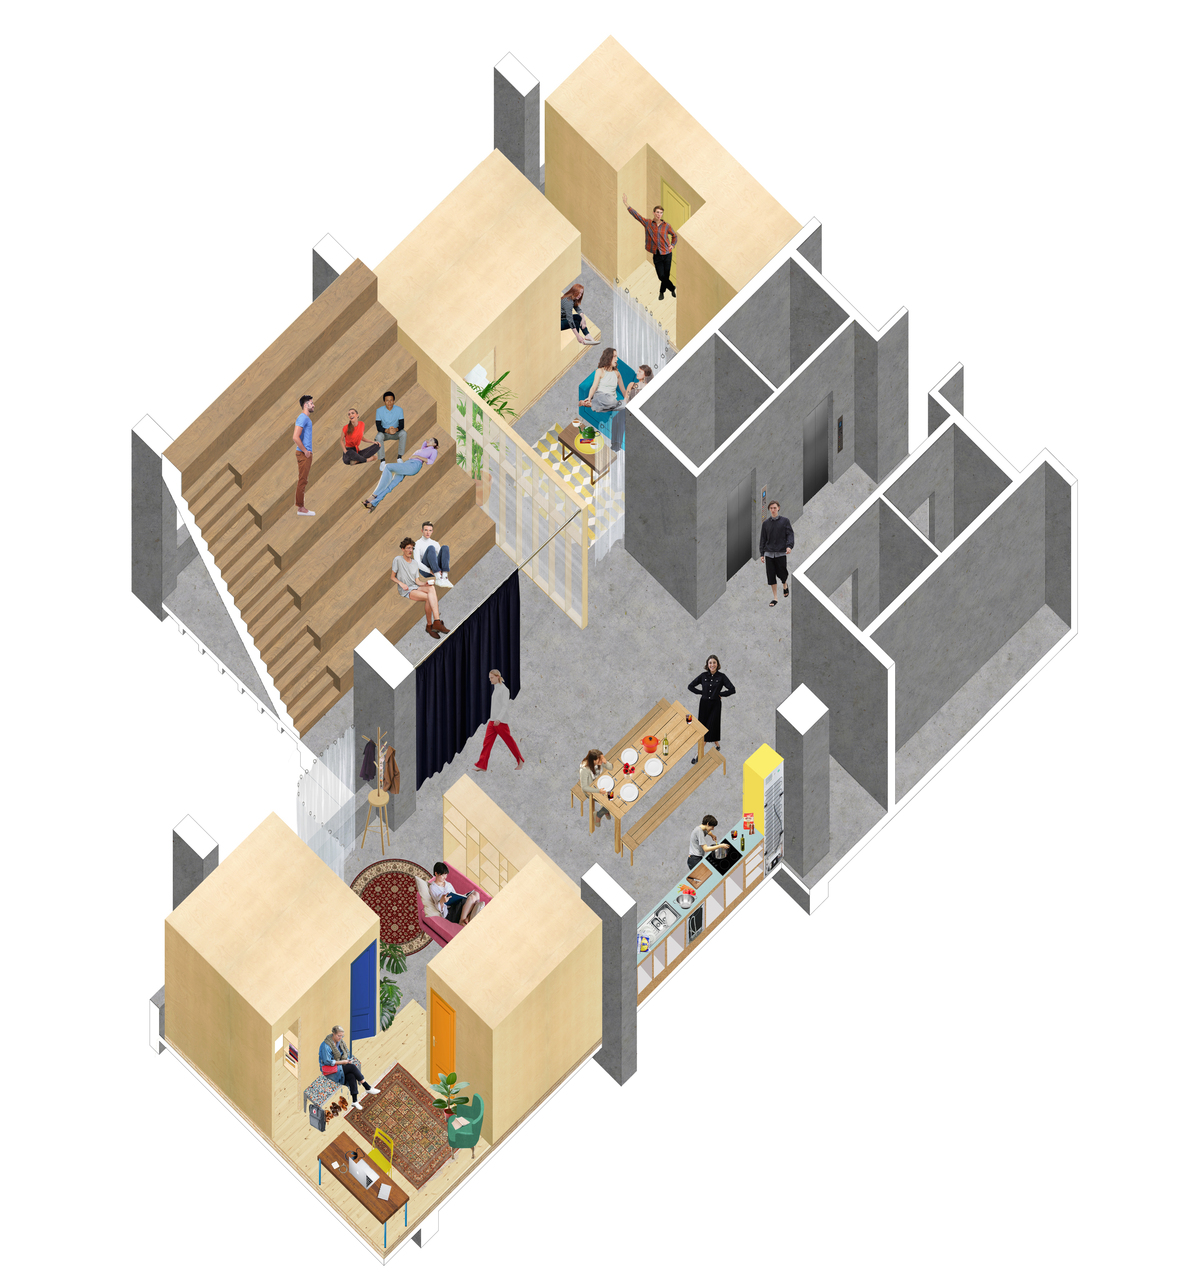 An axonometric of a typical floor in the hi-rise proposal, which is described as a light touch, affordable solution that treats all intervention as varying weights of furniture, [which] allows us to establish a horizontal hierarchy from communal to individual space. Credit: ED/GY